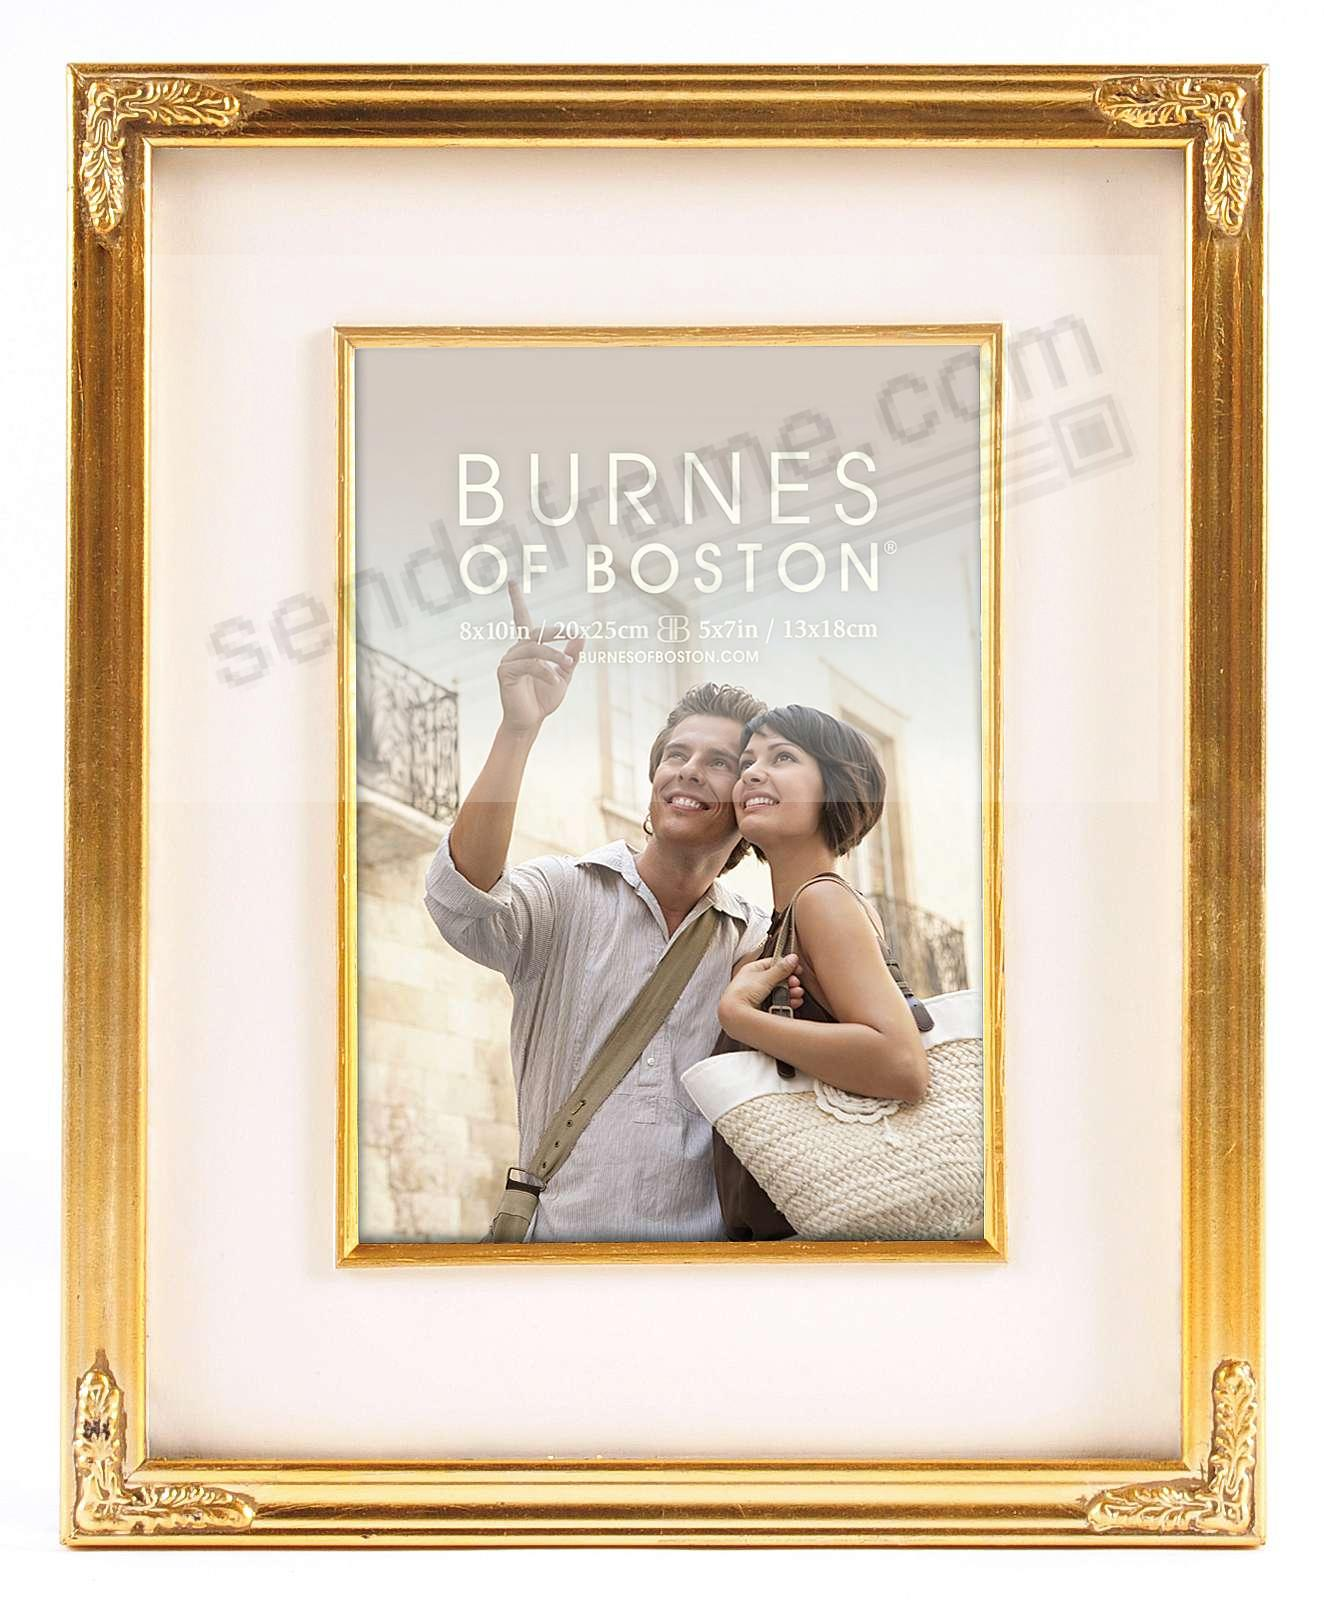 Ornamental Gold Frame 5x7/8x10 by Burnes - Picture Frames, Photo ...